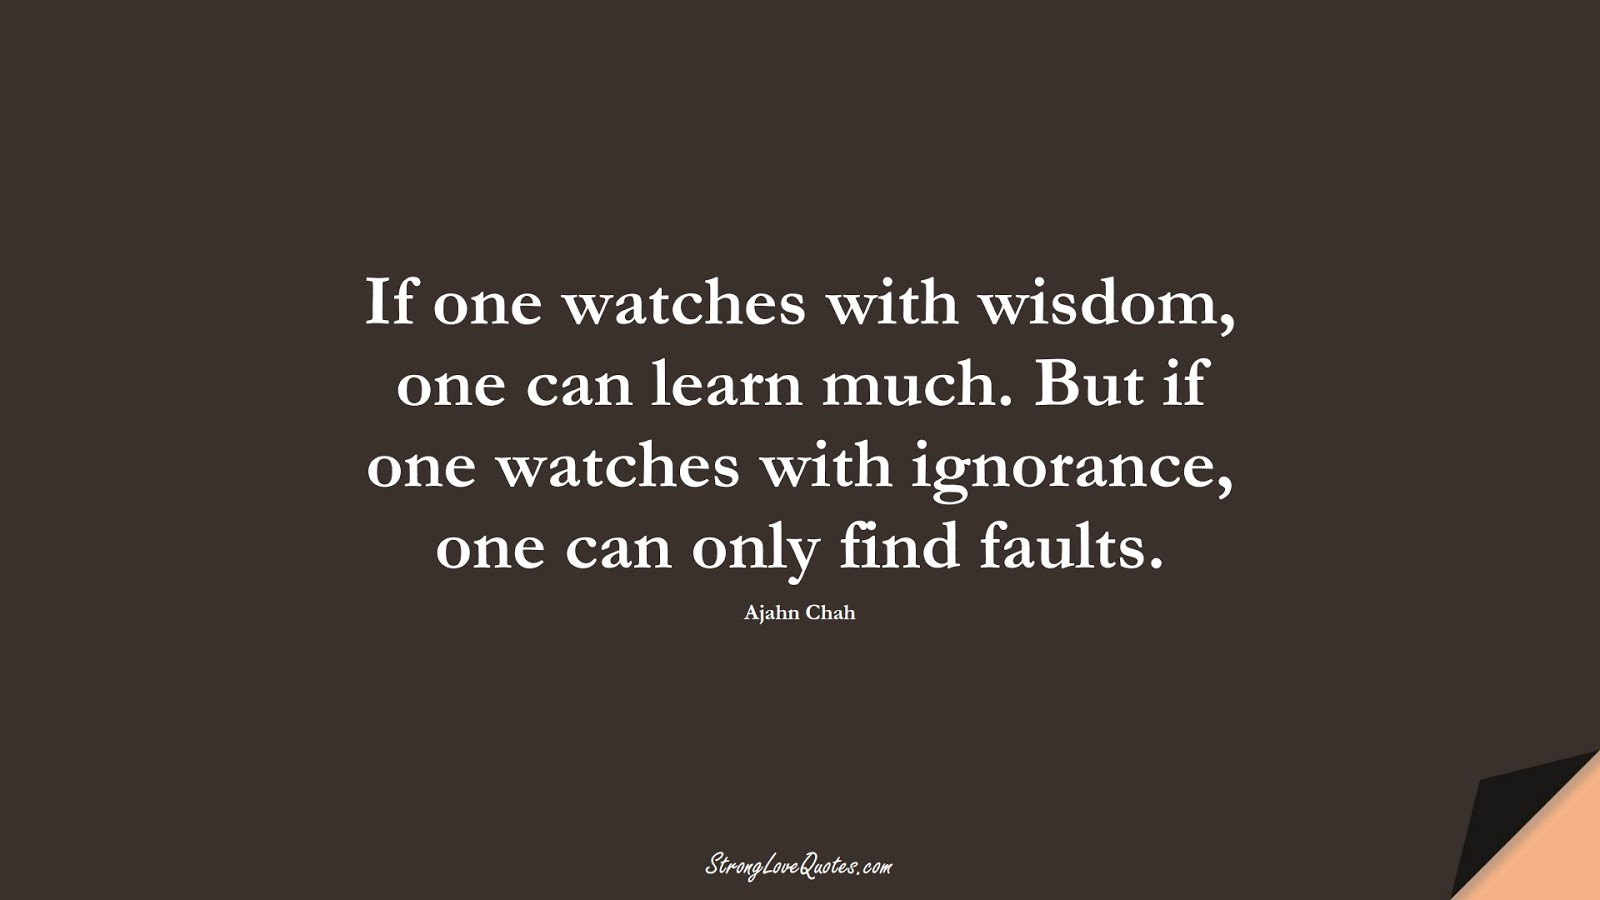 If one watches with wisdom, one can learn much. But if one watches with ignorance, one can only find faults. (Ajahn Chah);  #LearningQuotes